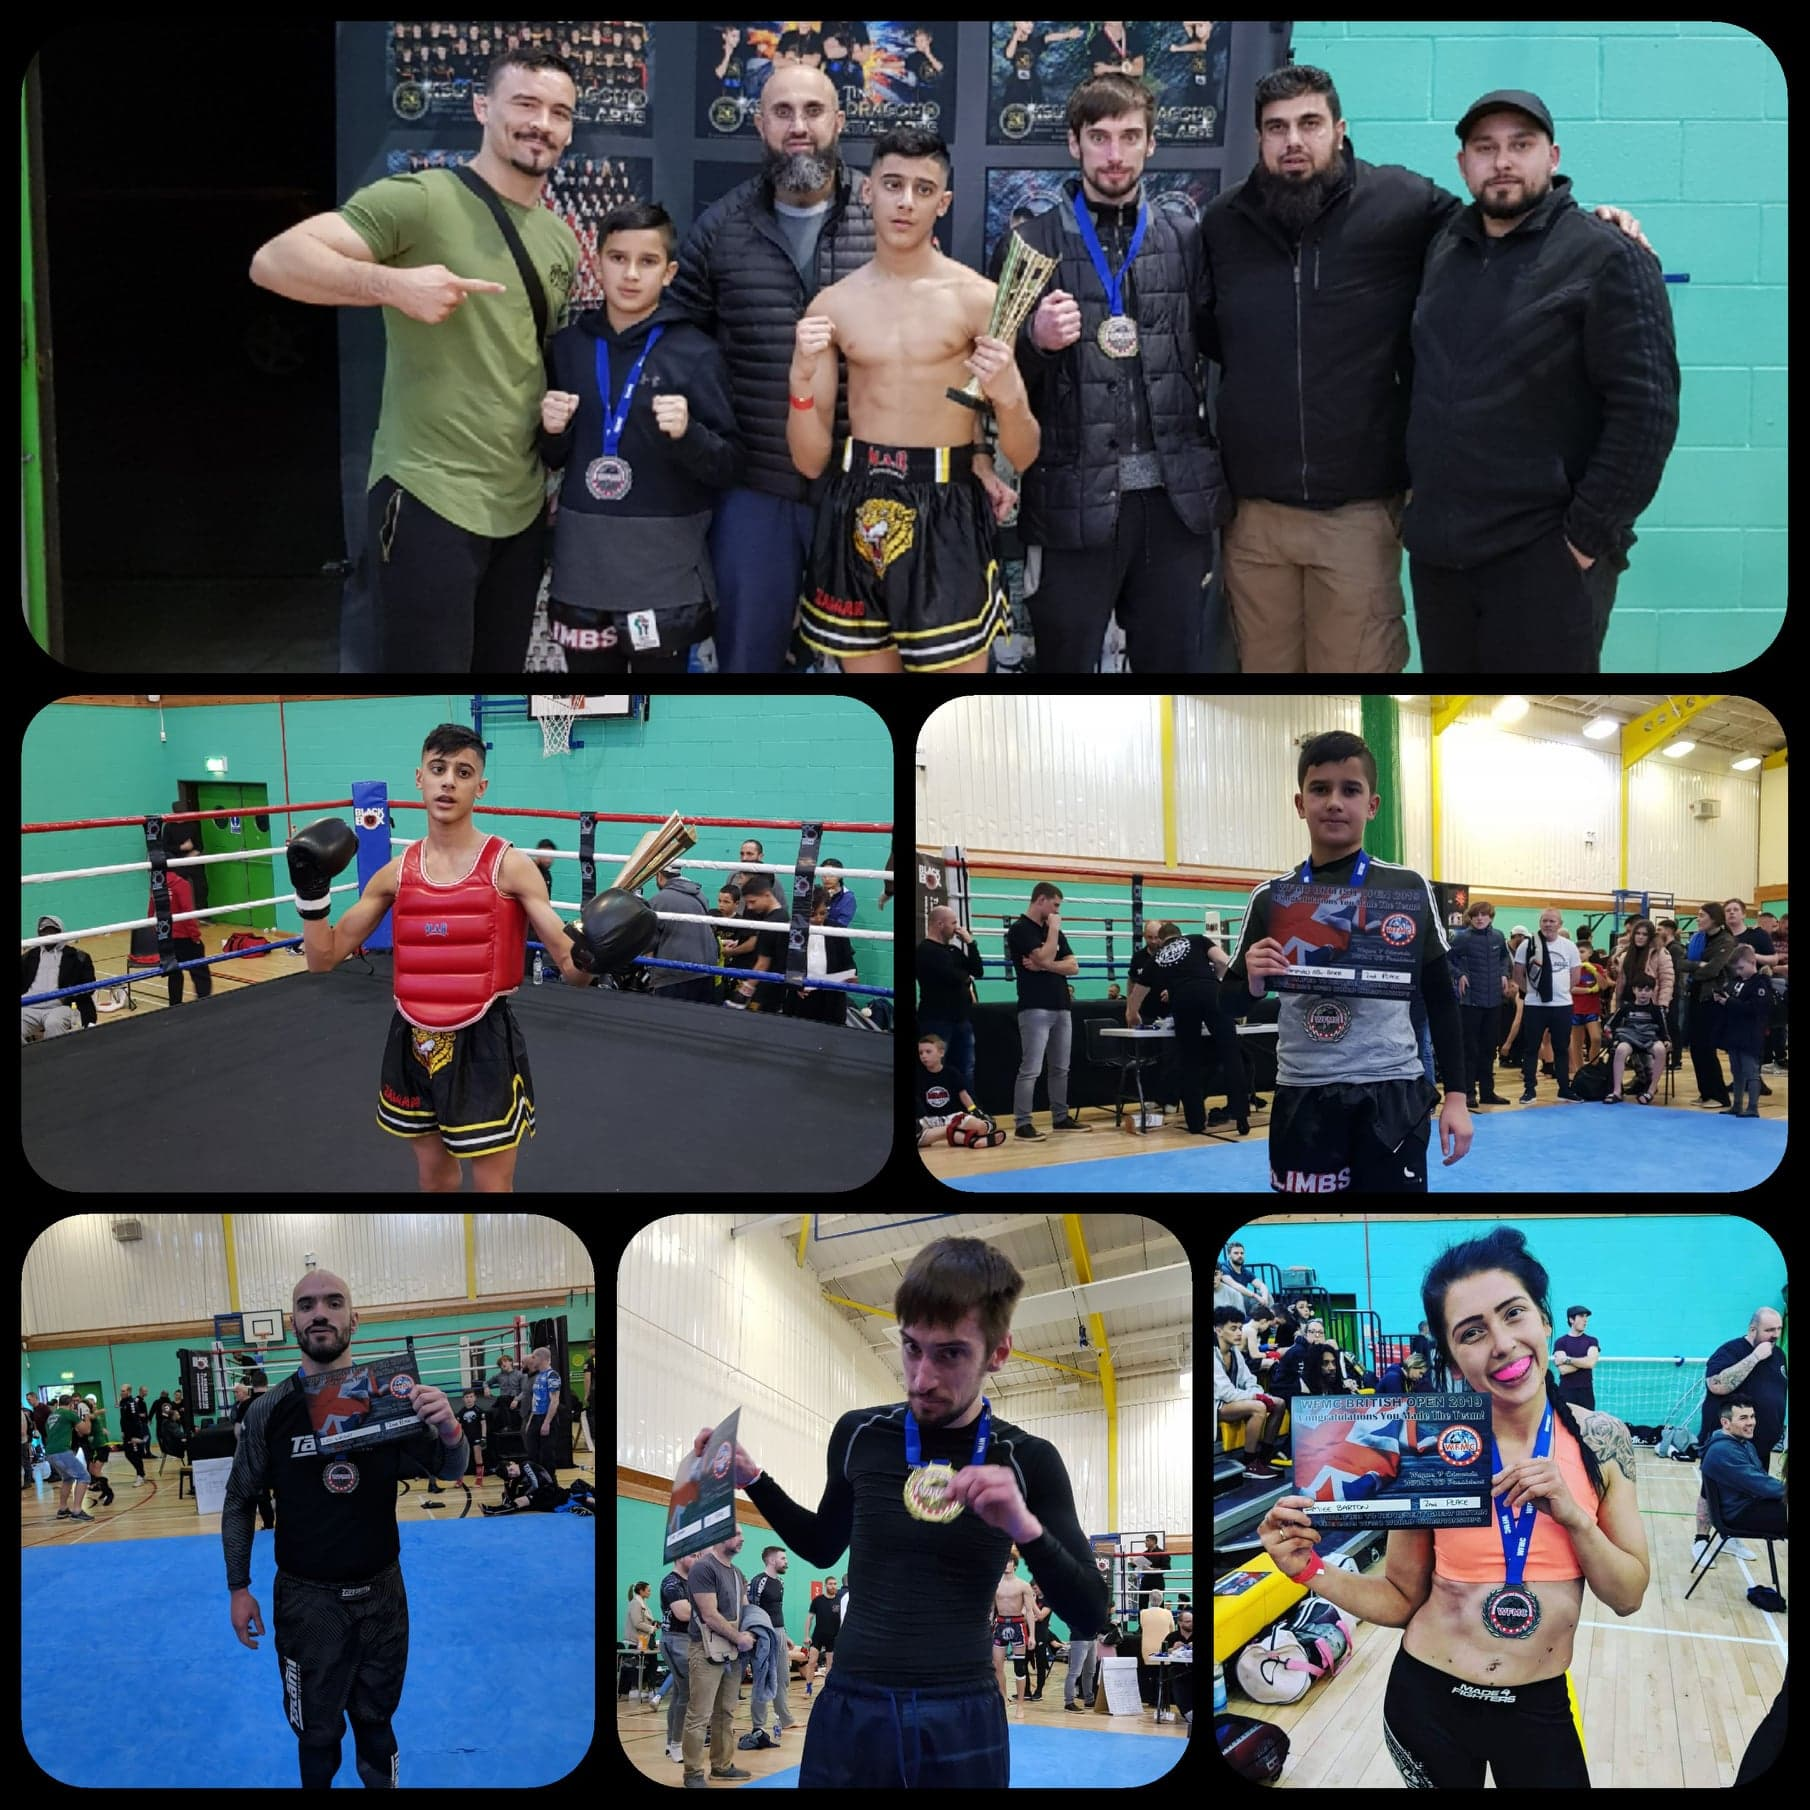 British International Open! - Five competed across K1 and Submission Grappling in the British International Open. The team left with 2 Golds and 3 Silvers.09/02/2019